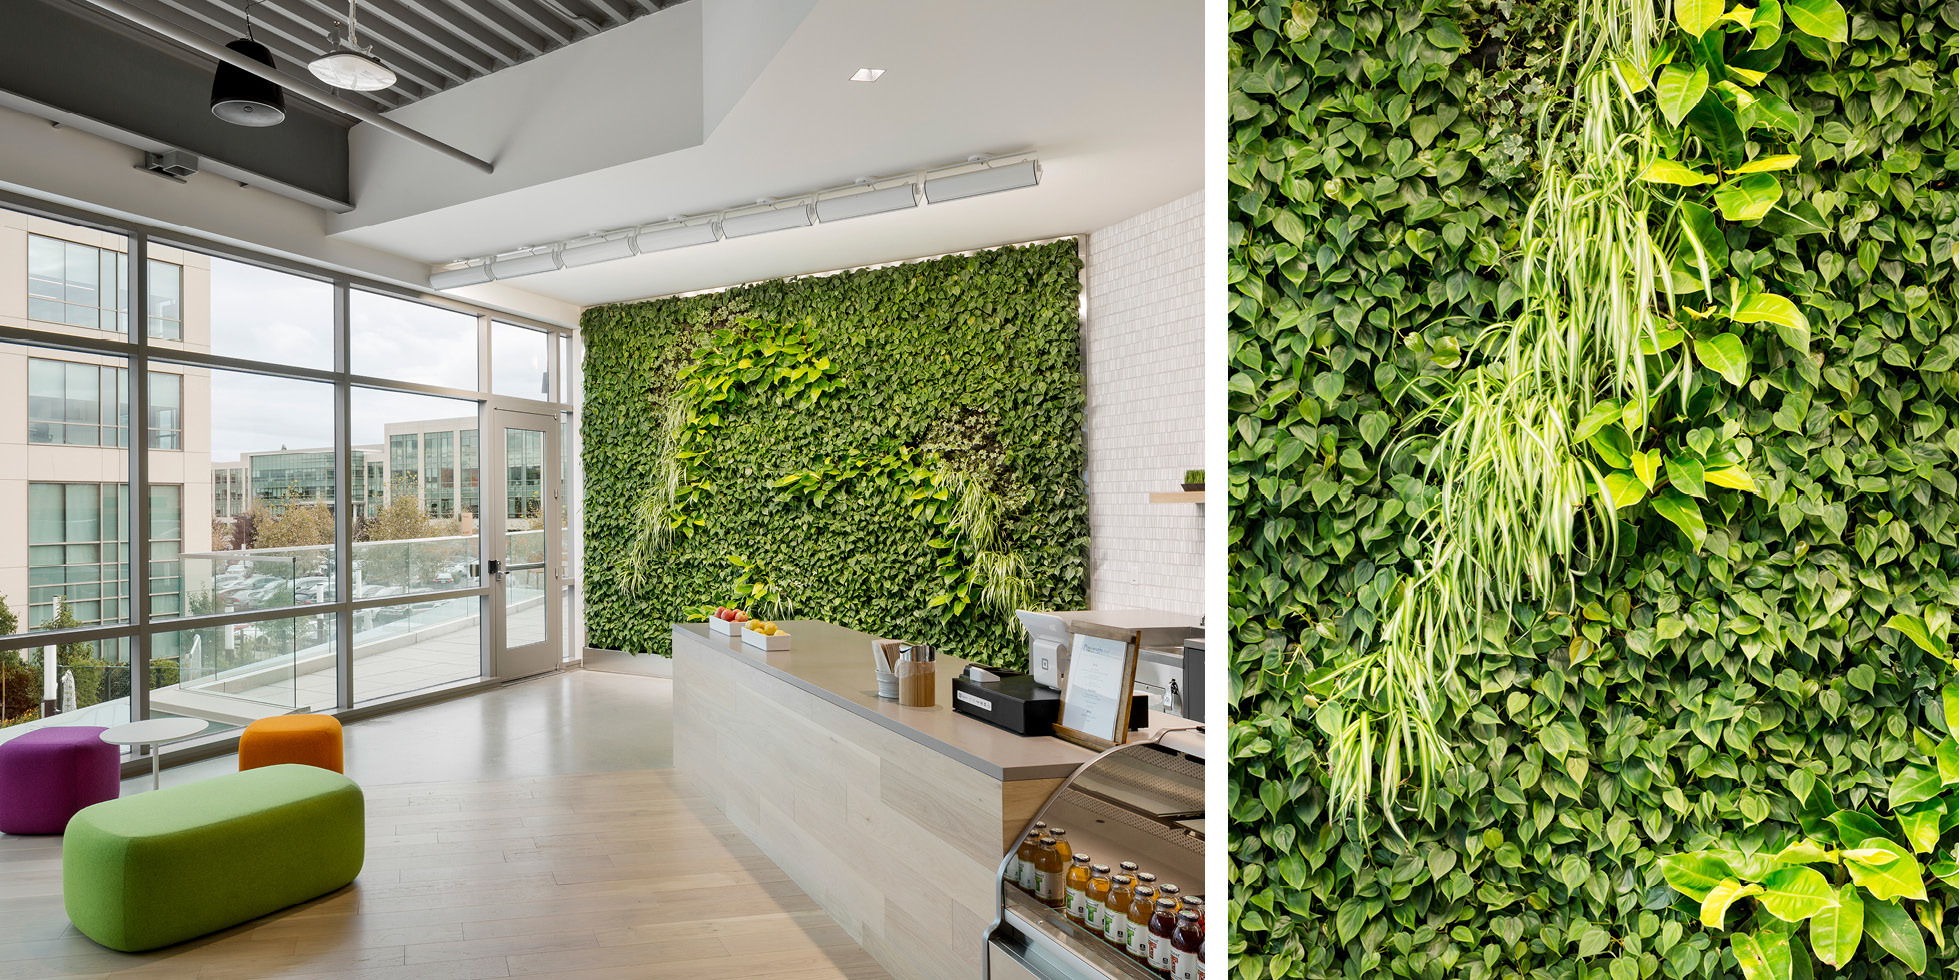 Palo Alto Networks Living Wall by Habitat Horticulture - View 3